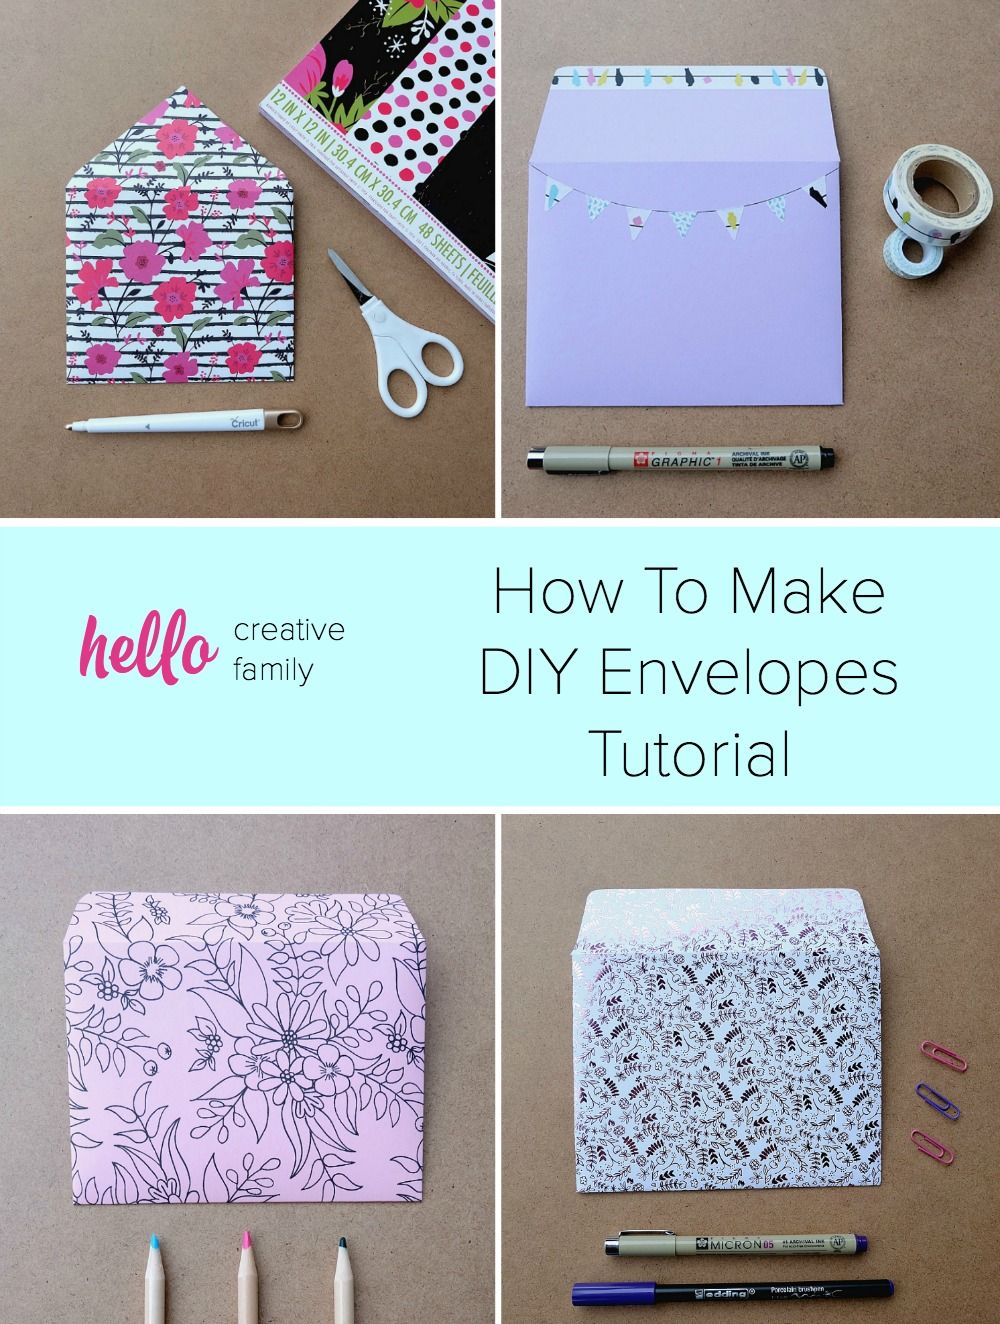 How to make diy envelopes tutorial diy envelope upcycle and youll want to hang onto old christmas and birthday card envelopes after reading this post upcycle old envelopes into envelope templates learn how to make bookmarktalkfo Images